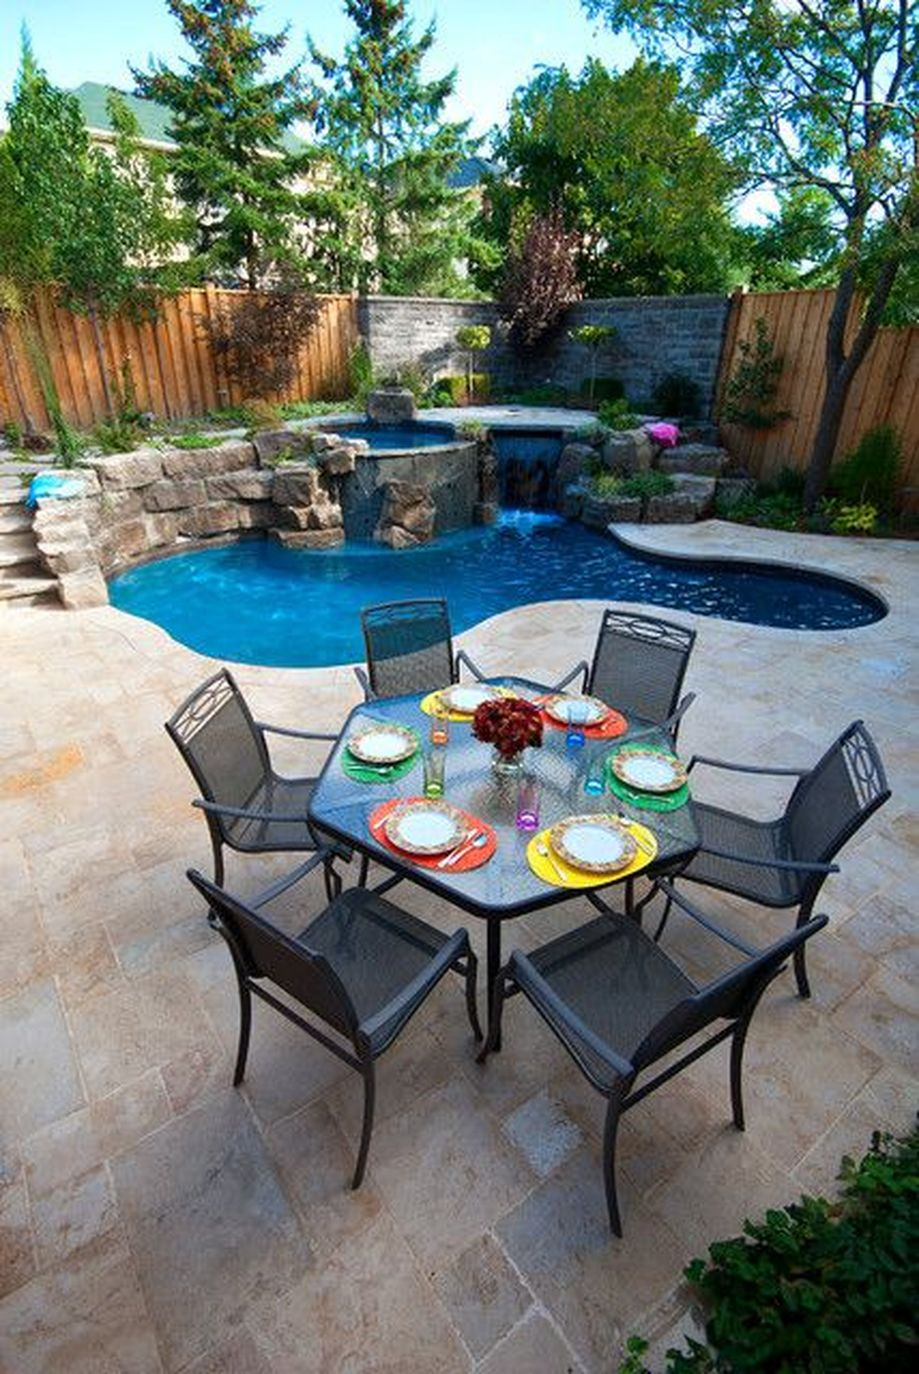 Awesome Small Pool Design for Home Backyard 59 - Hoommy.com